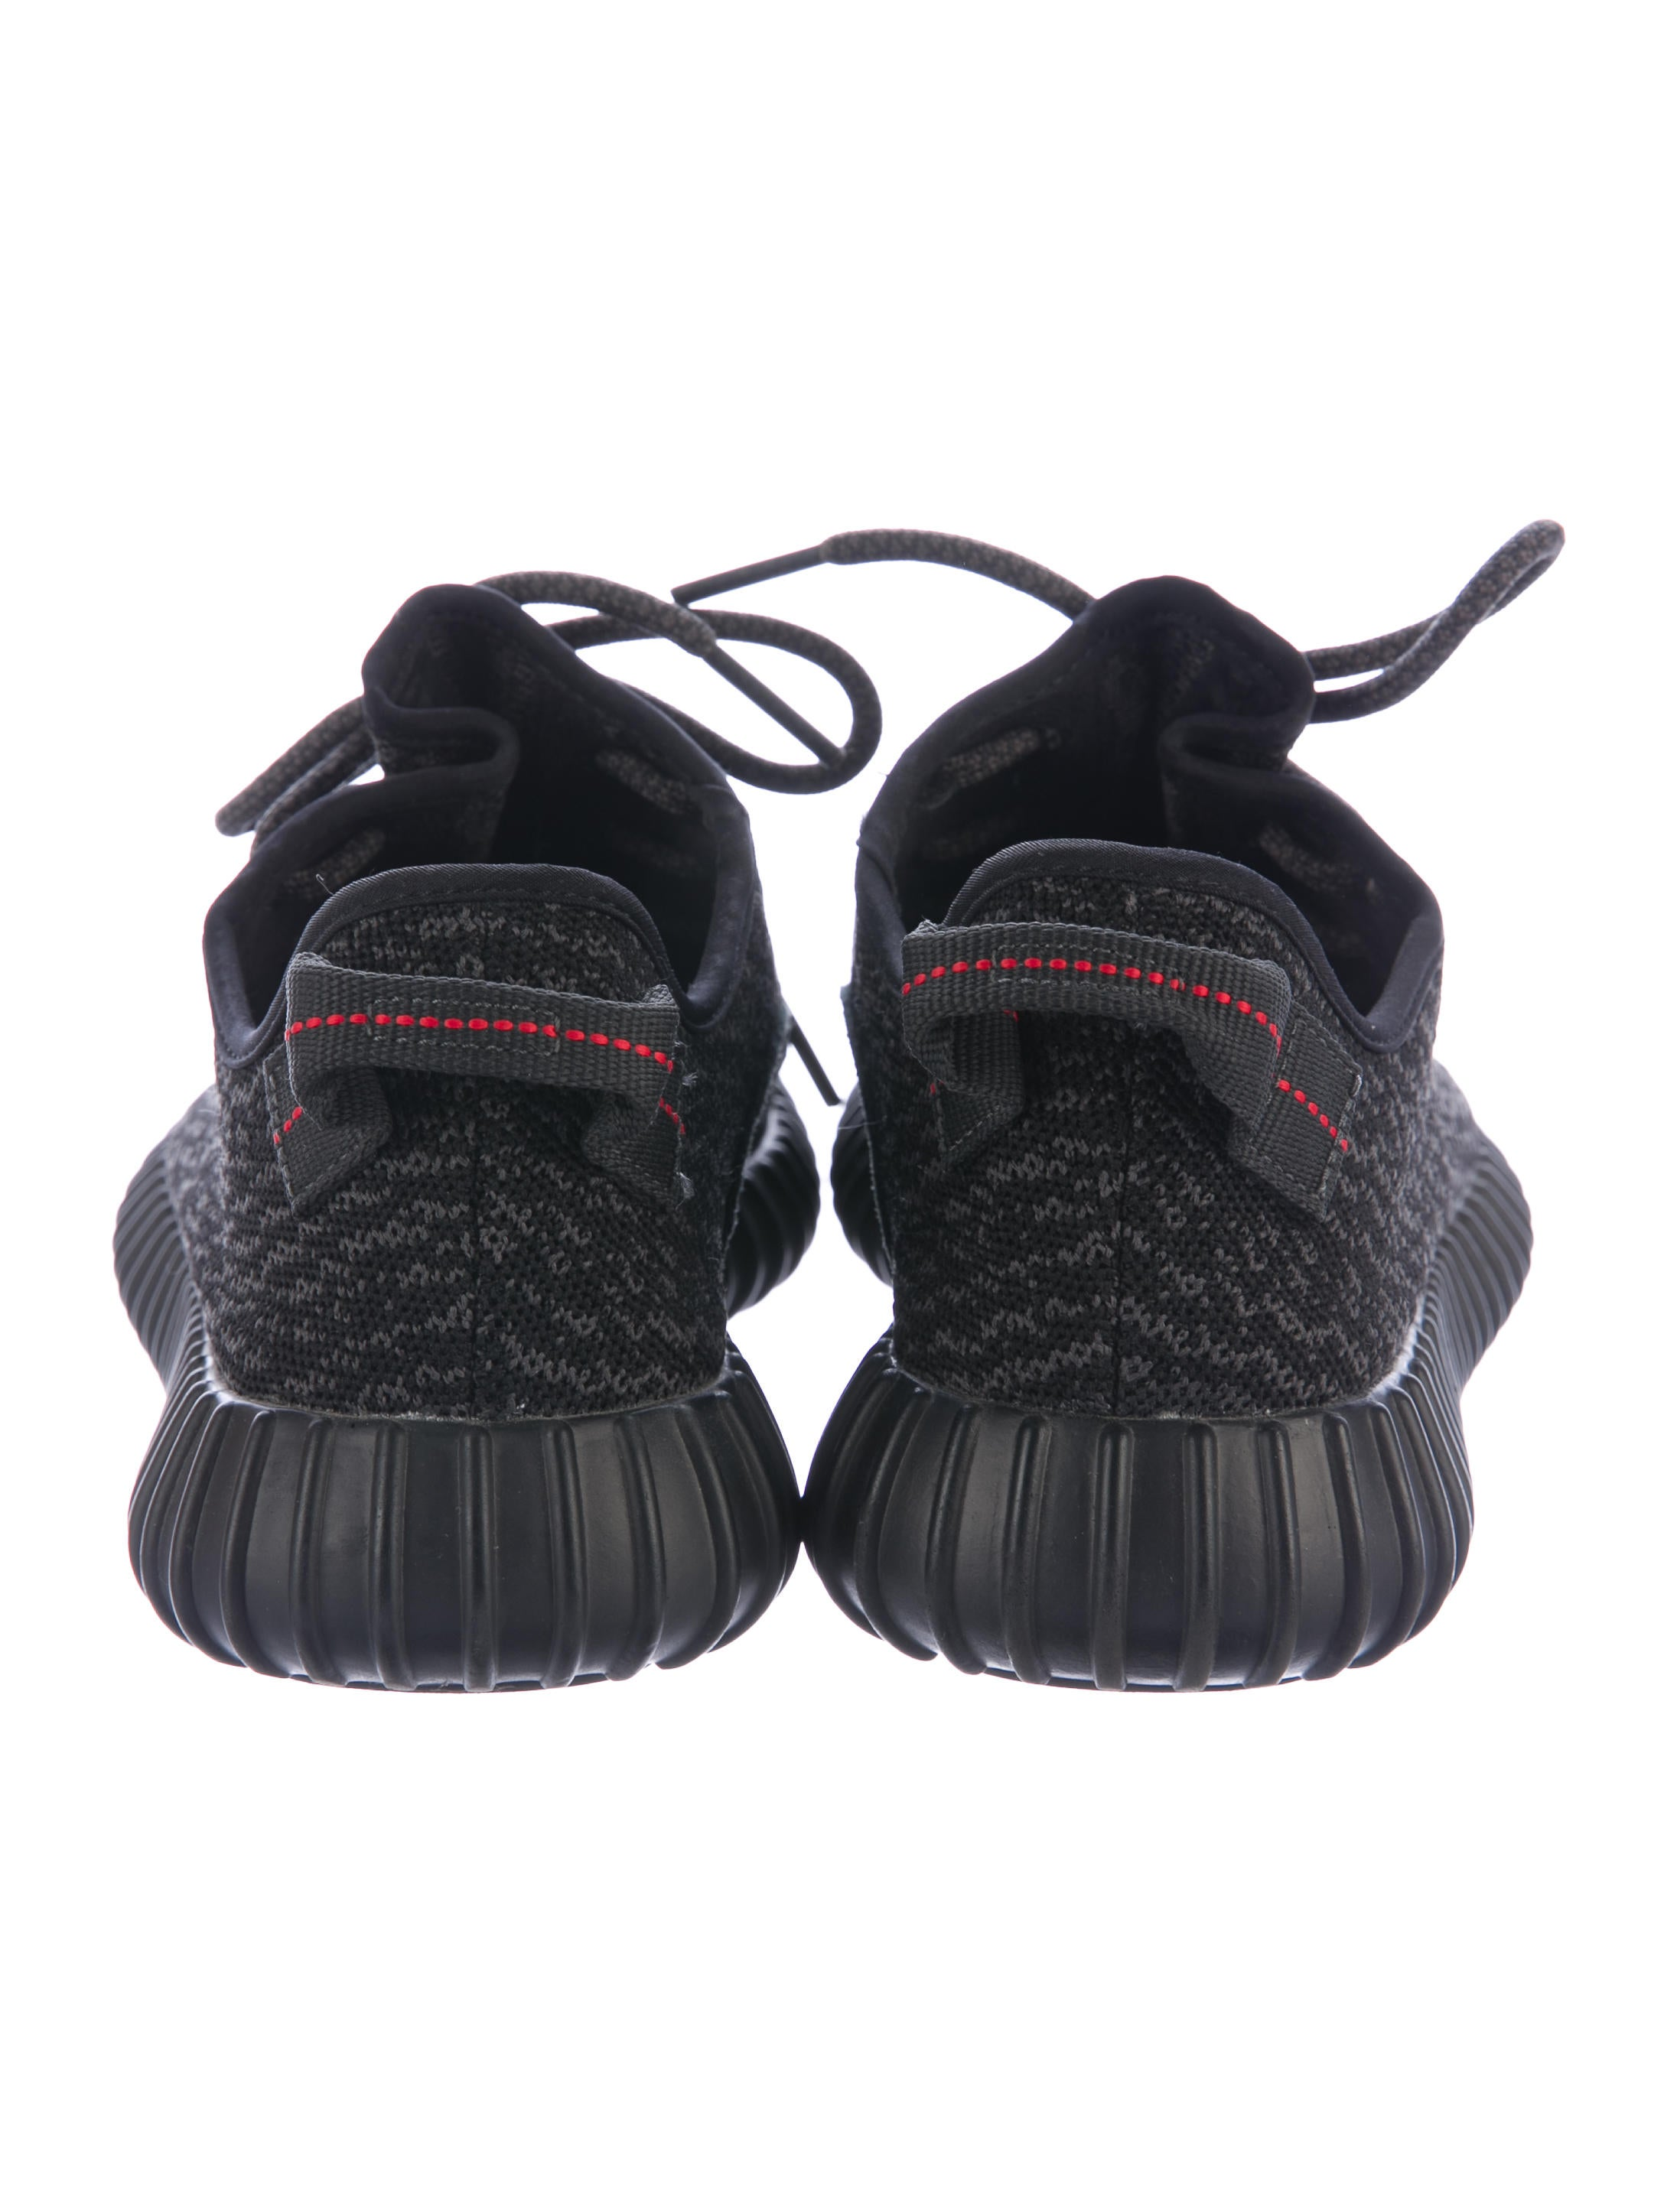 Yeezy X Adidas 2015 Pirate Black 350 Boost Sneakers